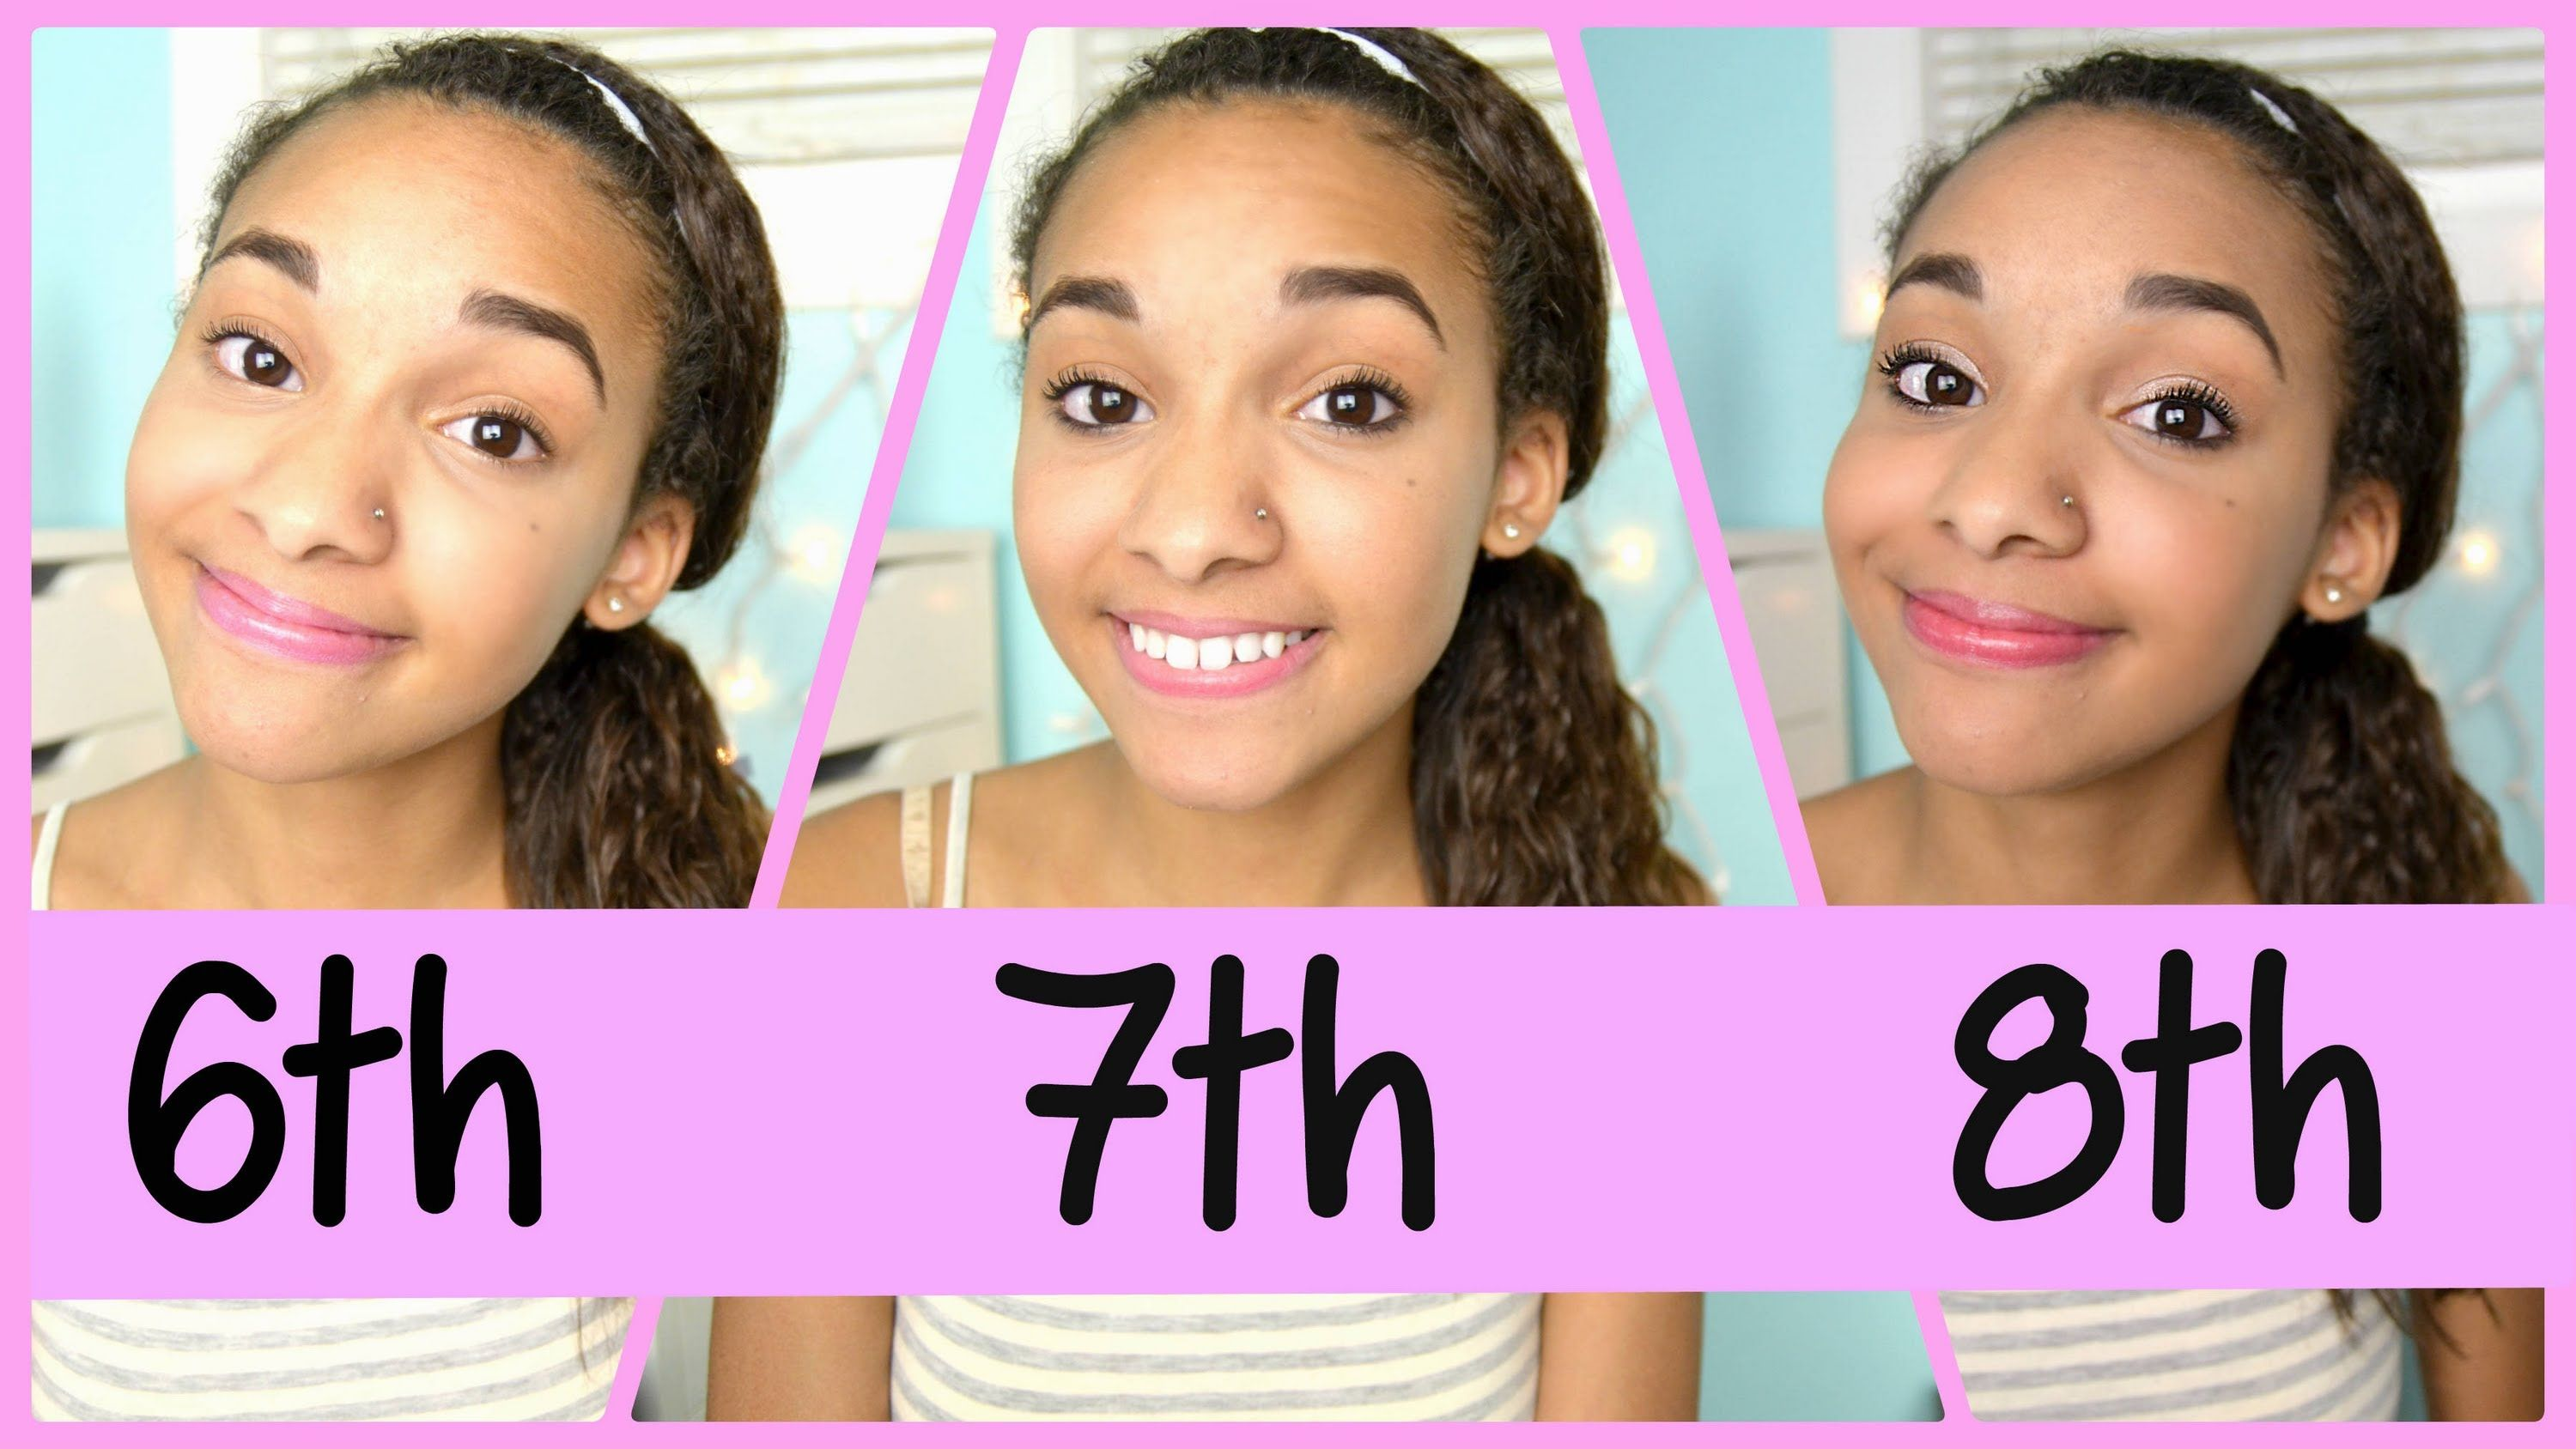 Middle School Makeup 6th, 7th & 8th Grade! I think that a